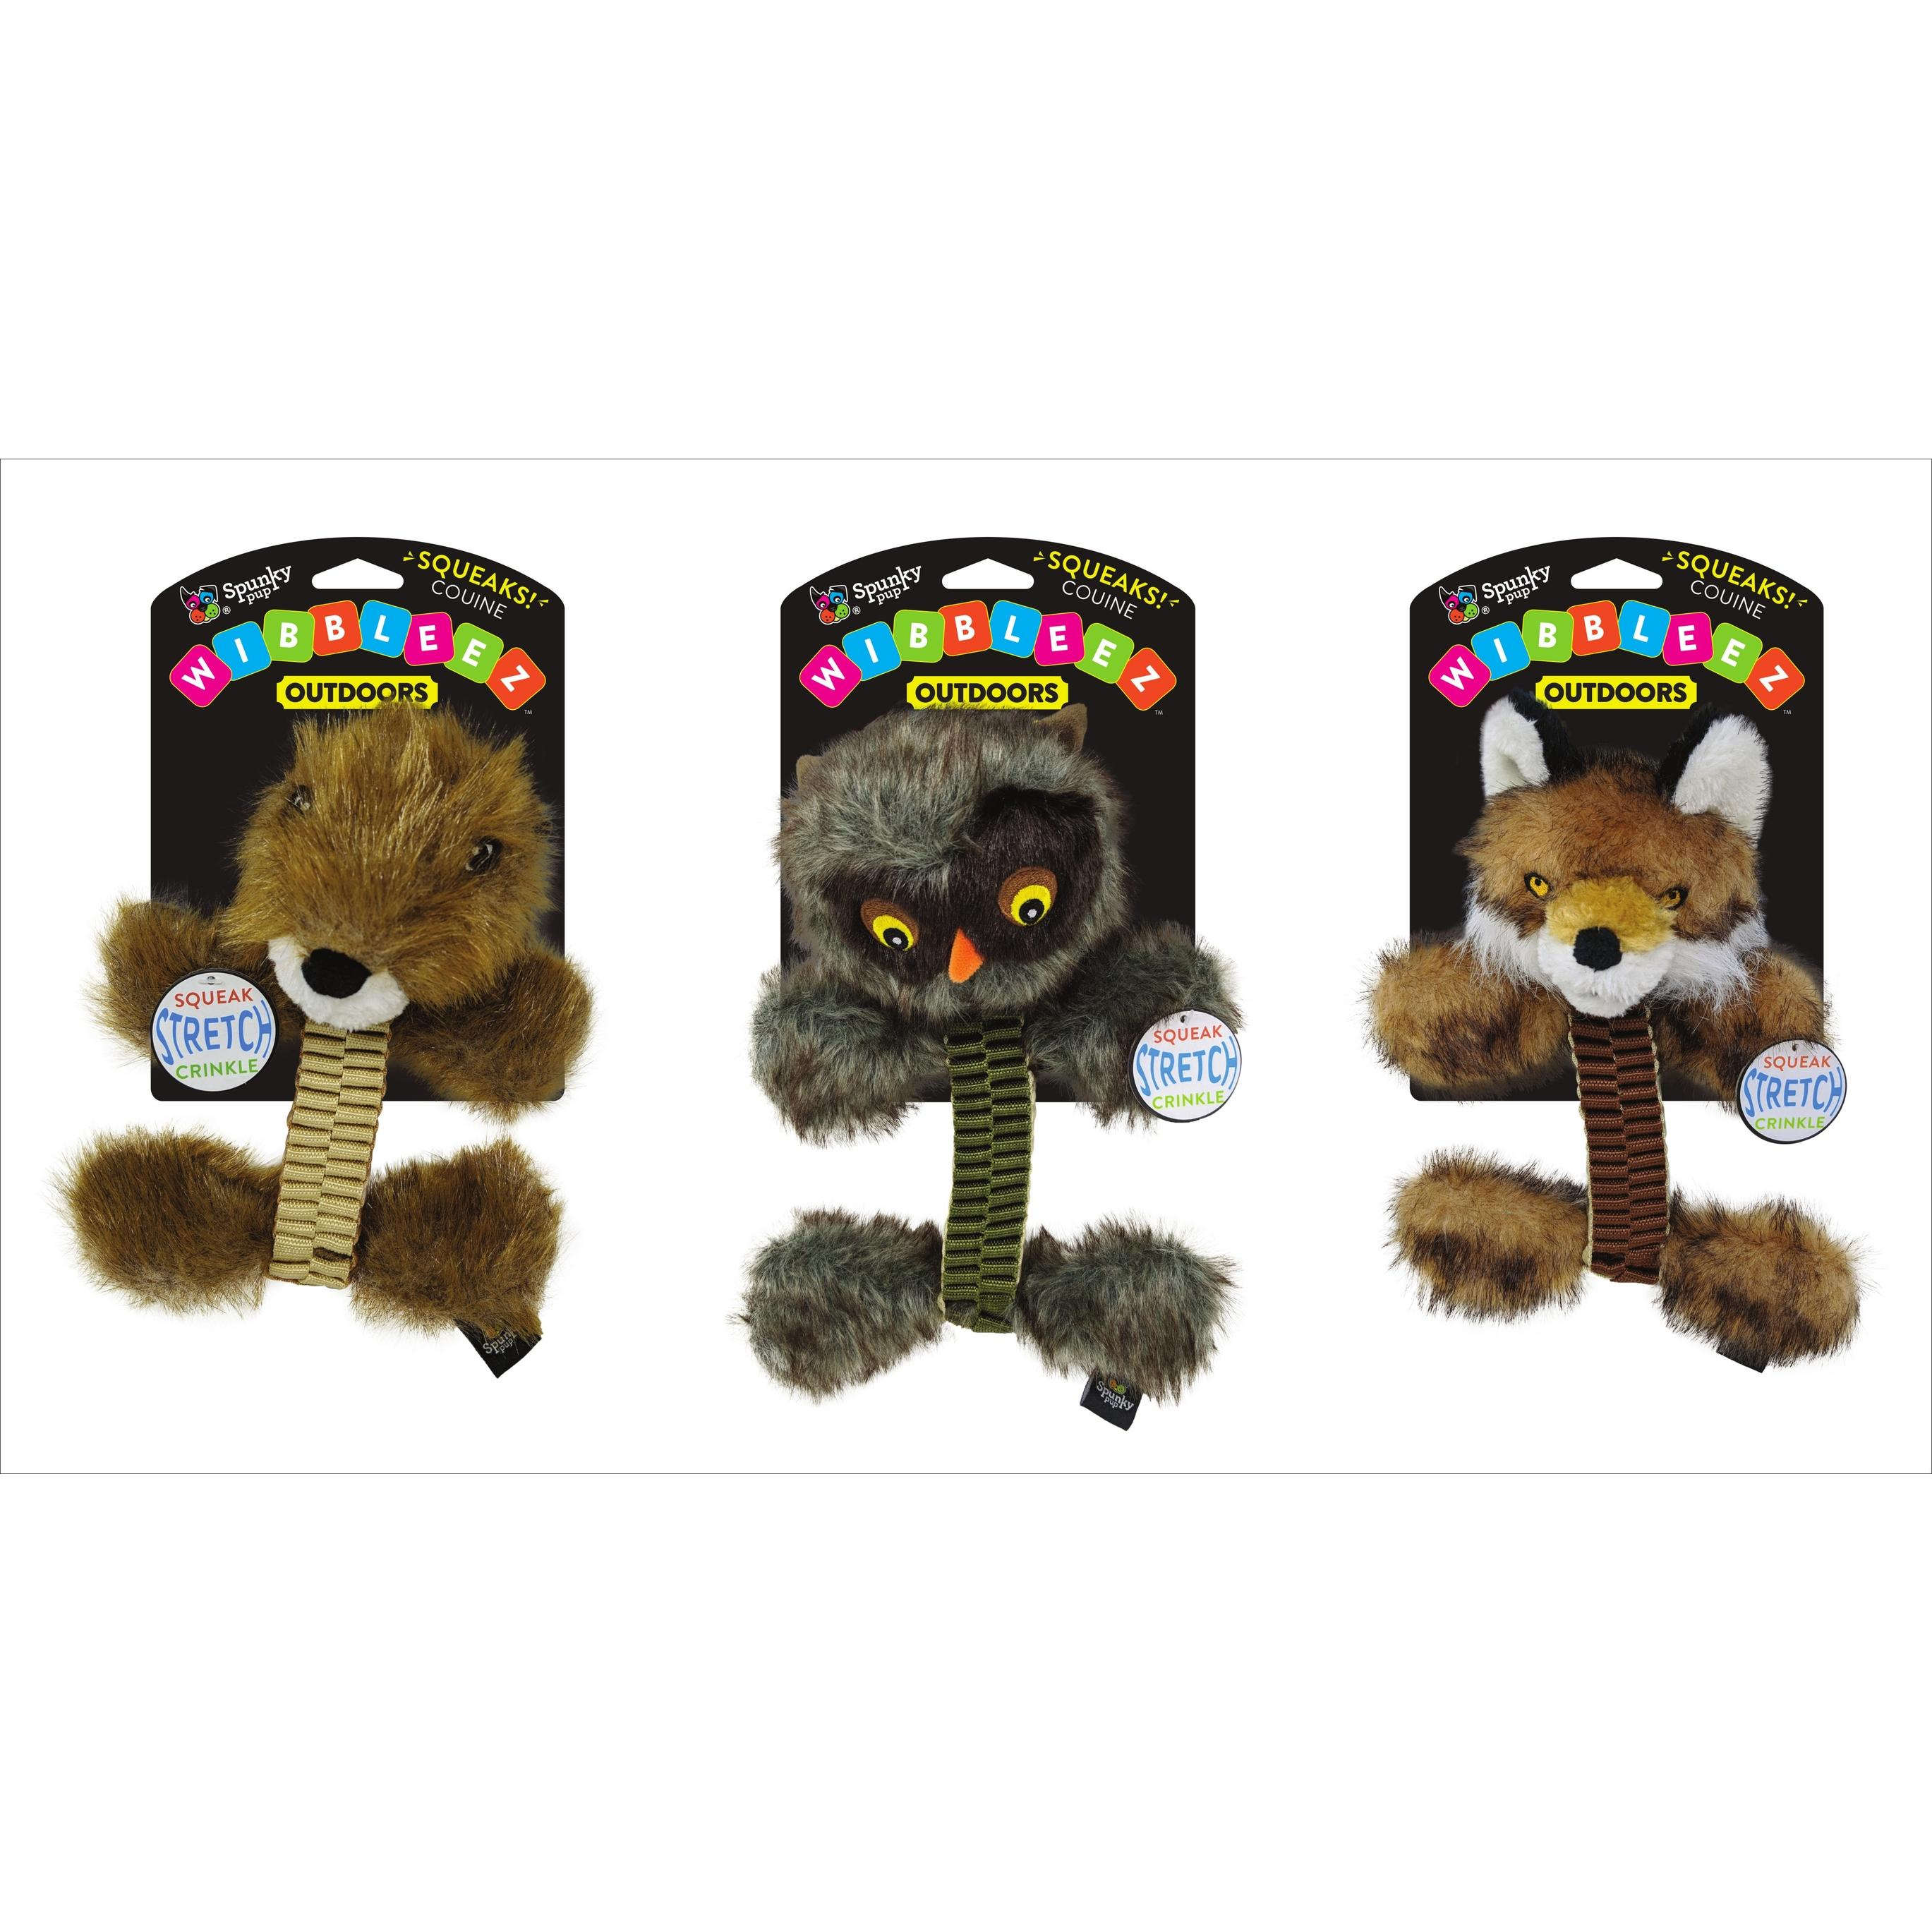 Spunky Pup Wibbleez Straight Outdoors Dog Toy, Character Varies